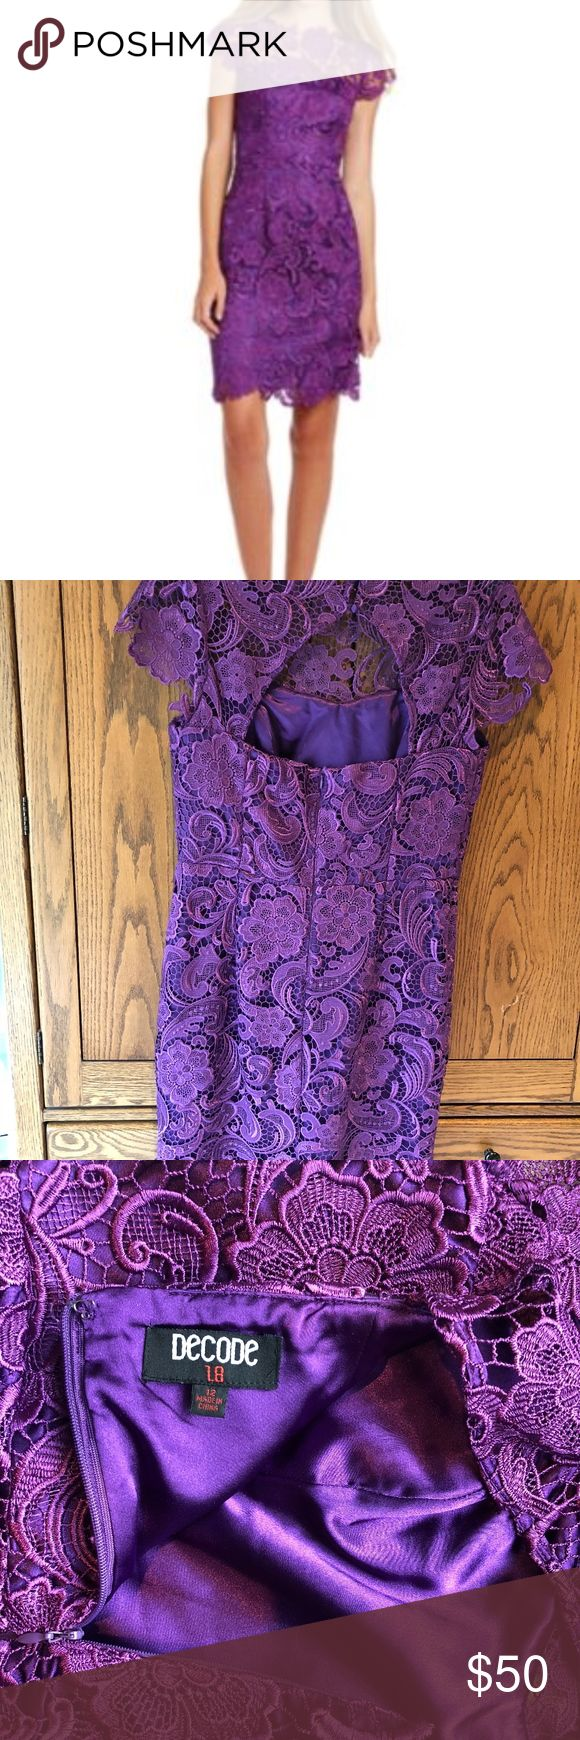 Decode 1.8 Floral Lace Sheath Dress Floral Lace Sheath Dress. Lace is plum/purple. Solid underlay is plum/purple. Size 12. Worn once as a Bridesmaids dress. Great condition. Sold by Dillards Decode 1.8 Dresses